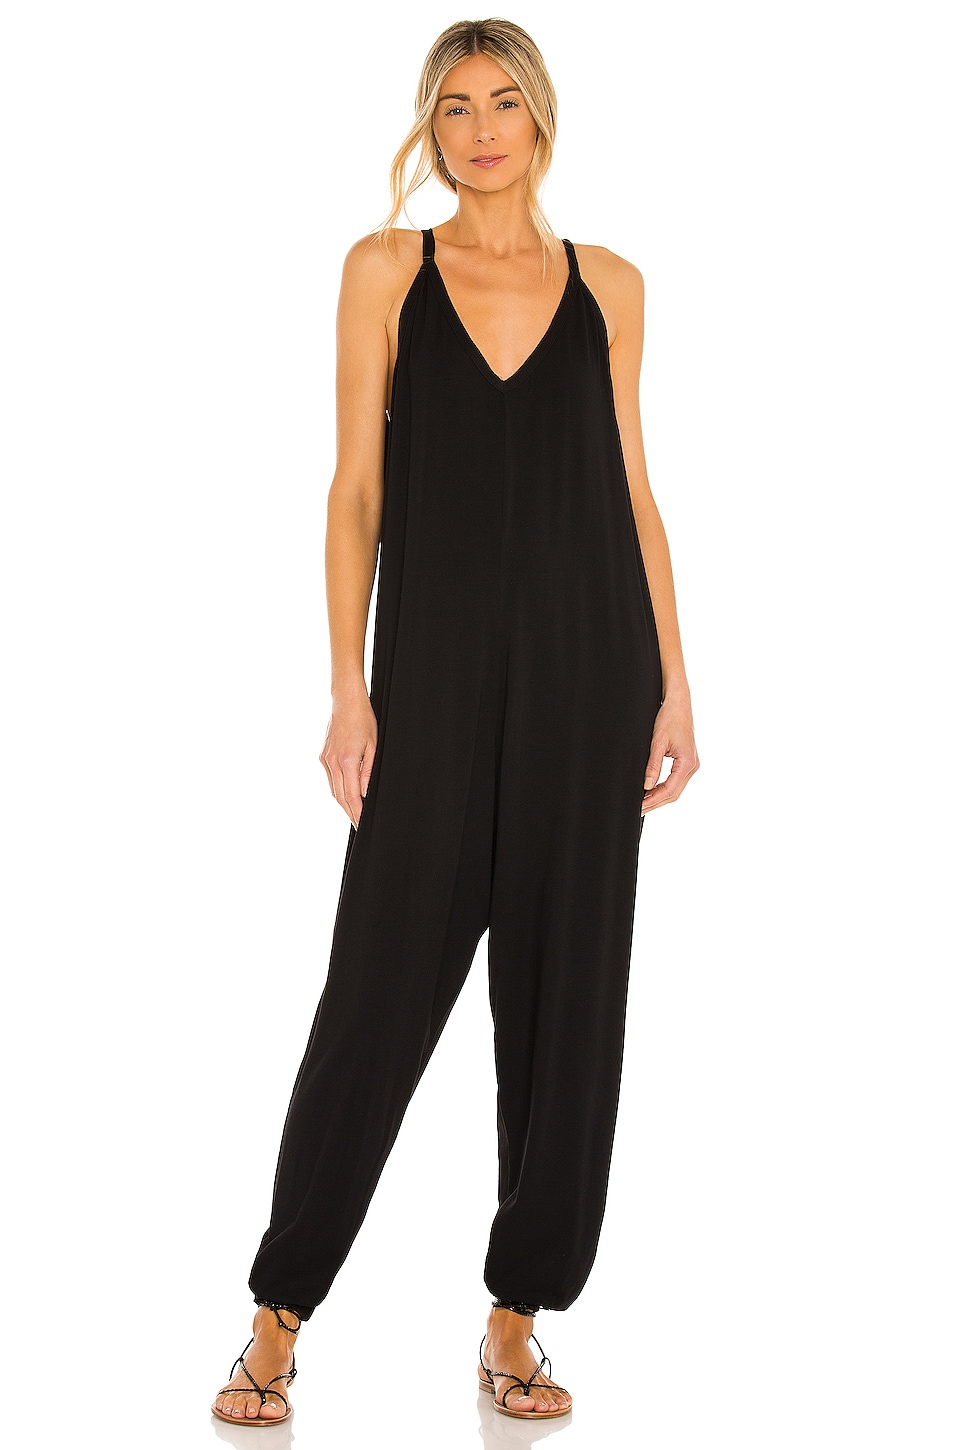 Draped Jumpsuit             Bobi                                                                                                       CA$ 143.60 10